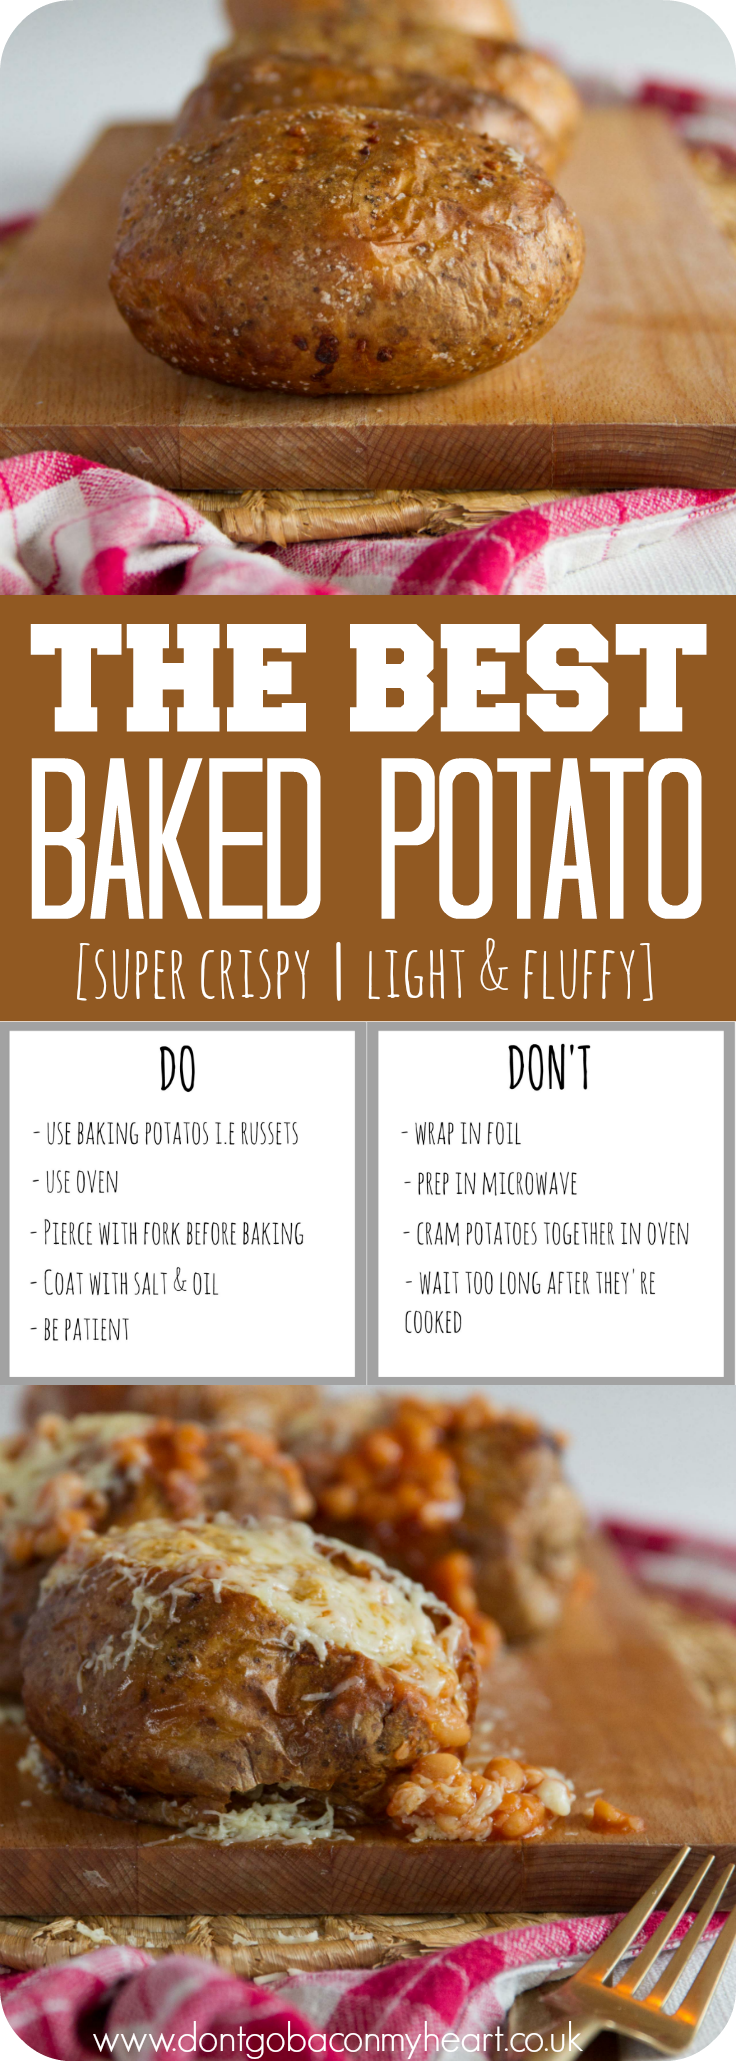 A step by step guide to making the Best Baked Potato. Crispy on the outside and fluffy on the inside, the perfect Jacket Potato is yours, ready and waiting!#potato #bakedpotato #jacketpotato | www.dontgobaconmyheart.co.uk